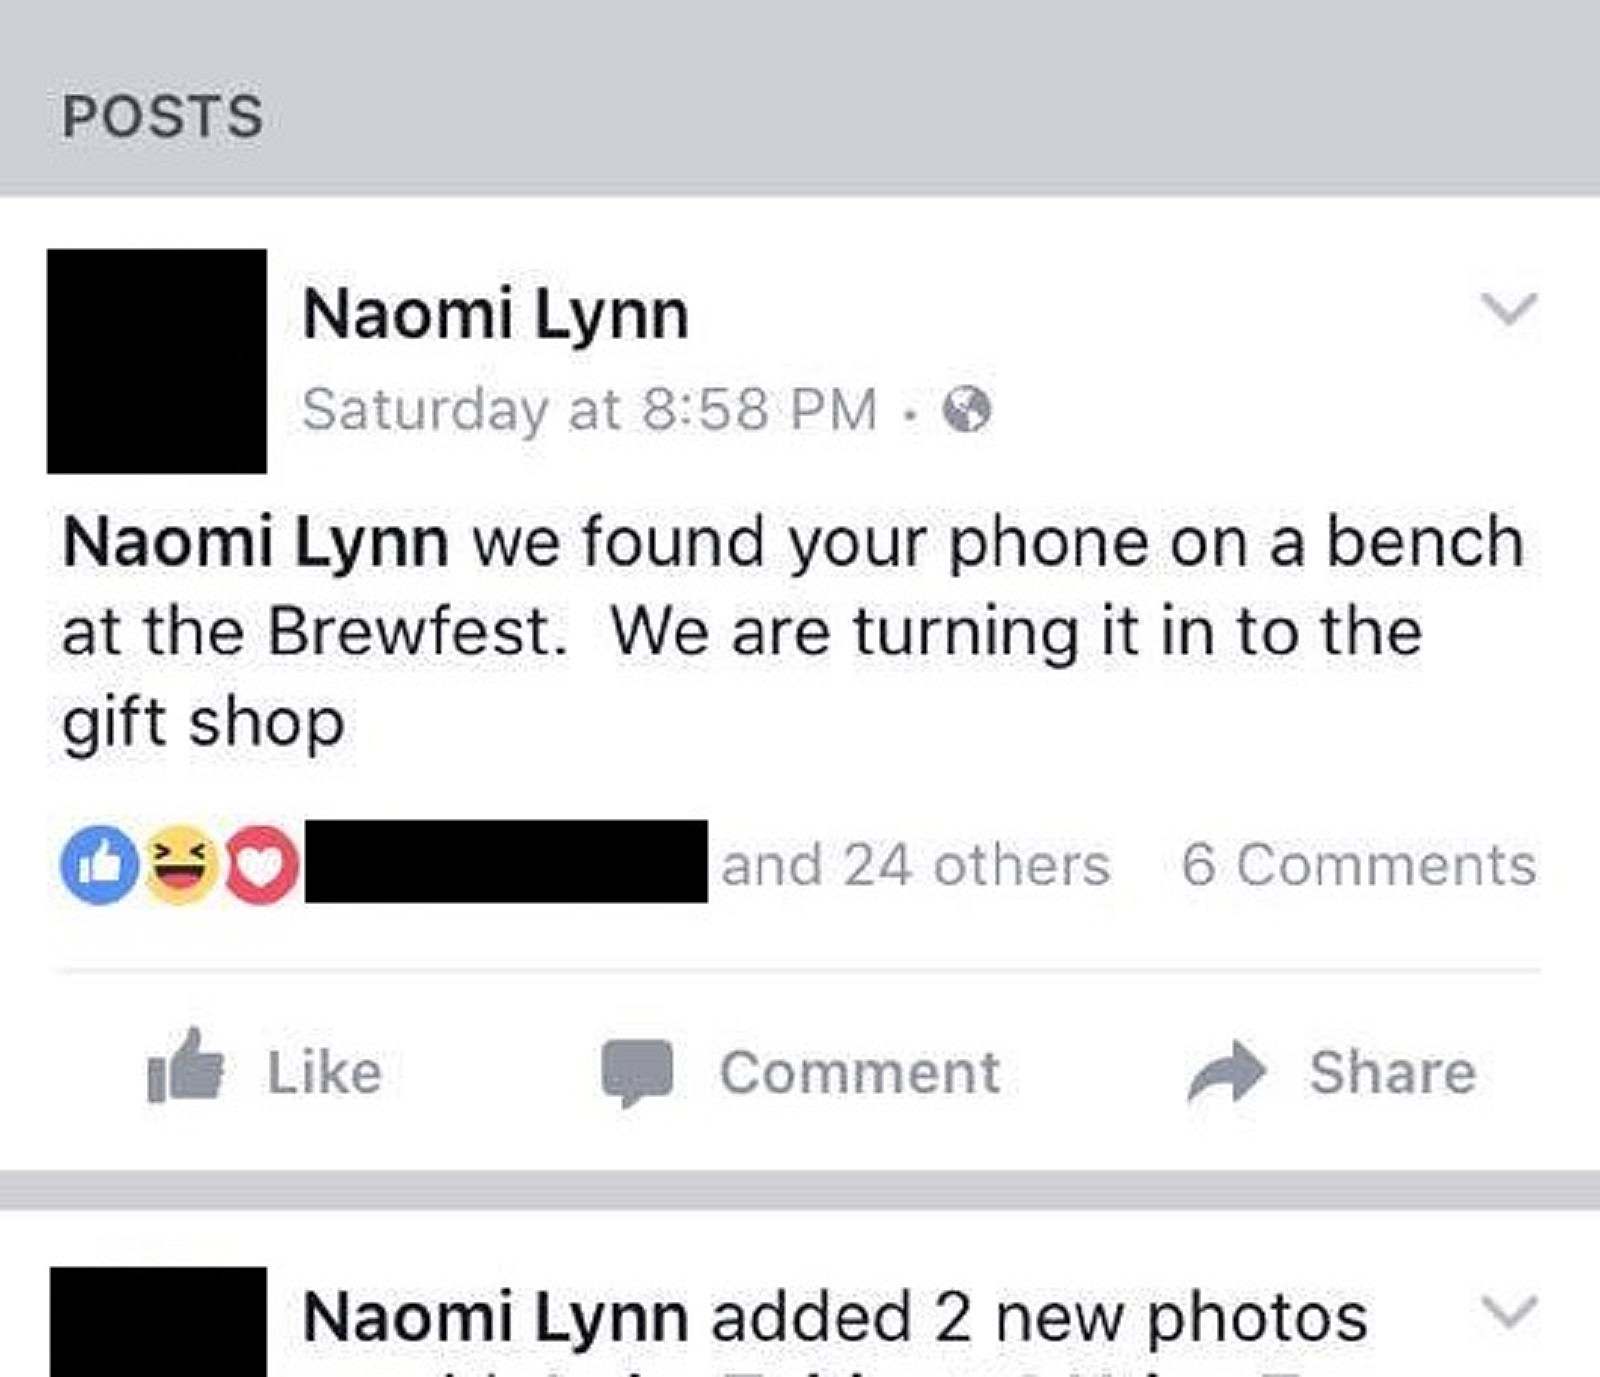 Facebook Post on Naomi's Wall From Person Who Found Her Phone